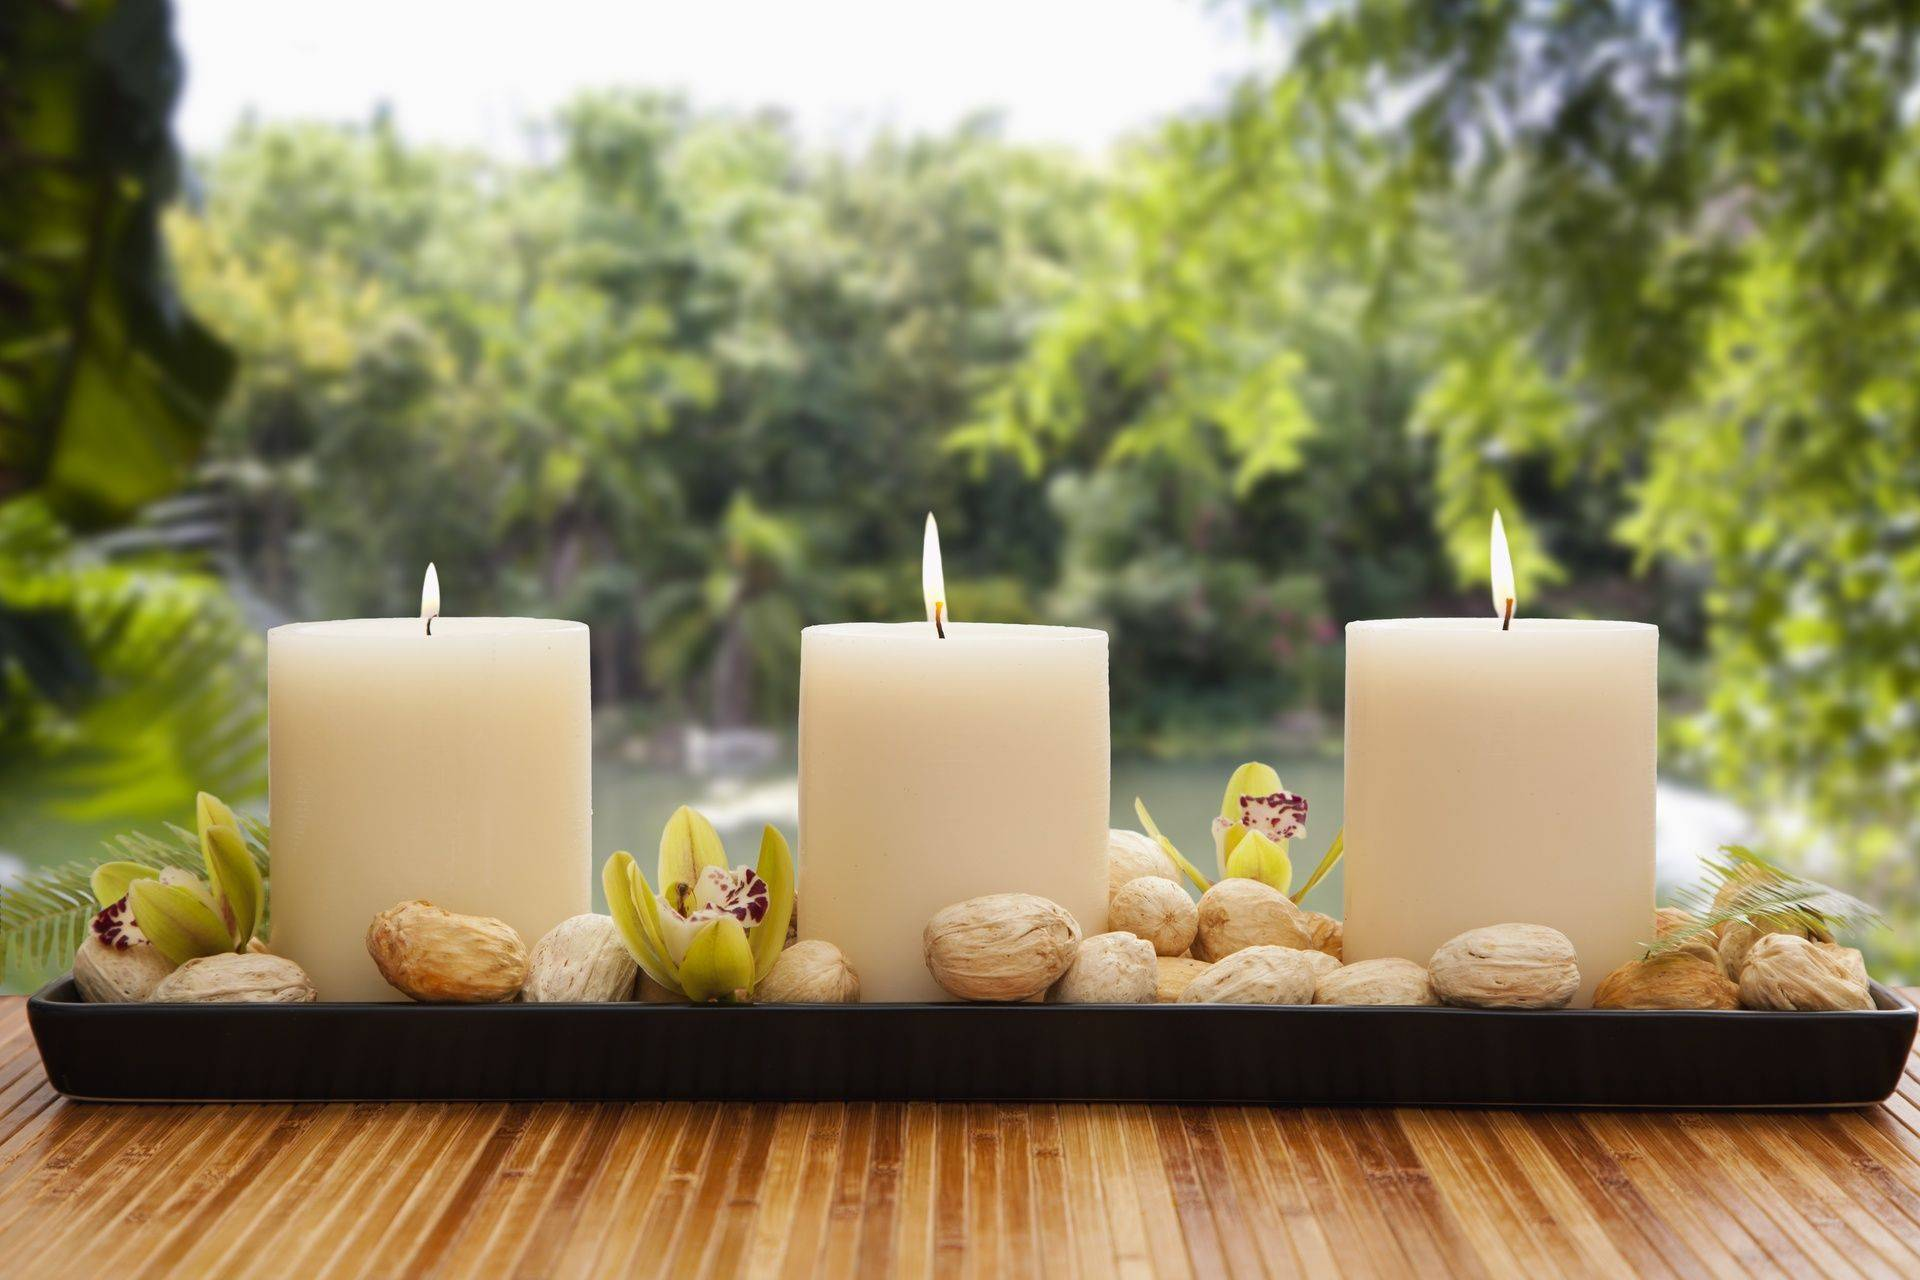 candlelit glow for relaxation and ambiance